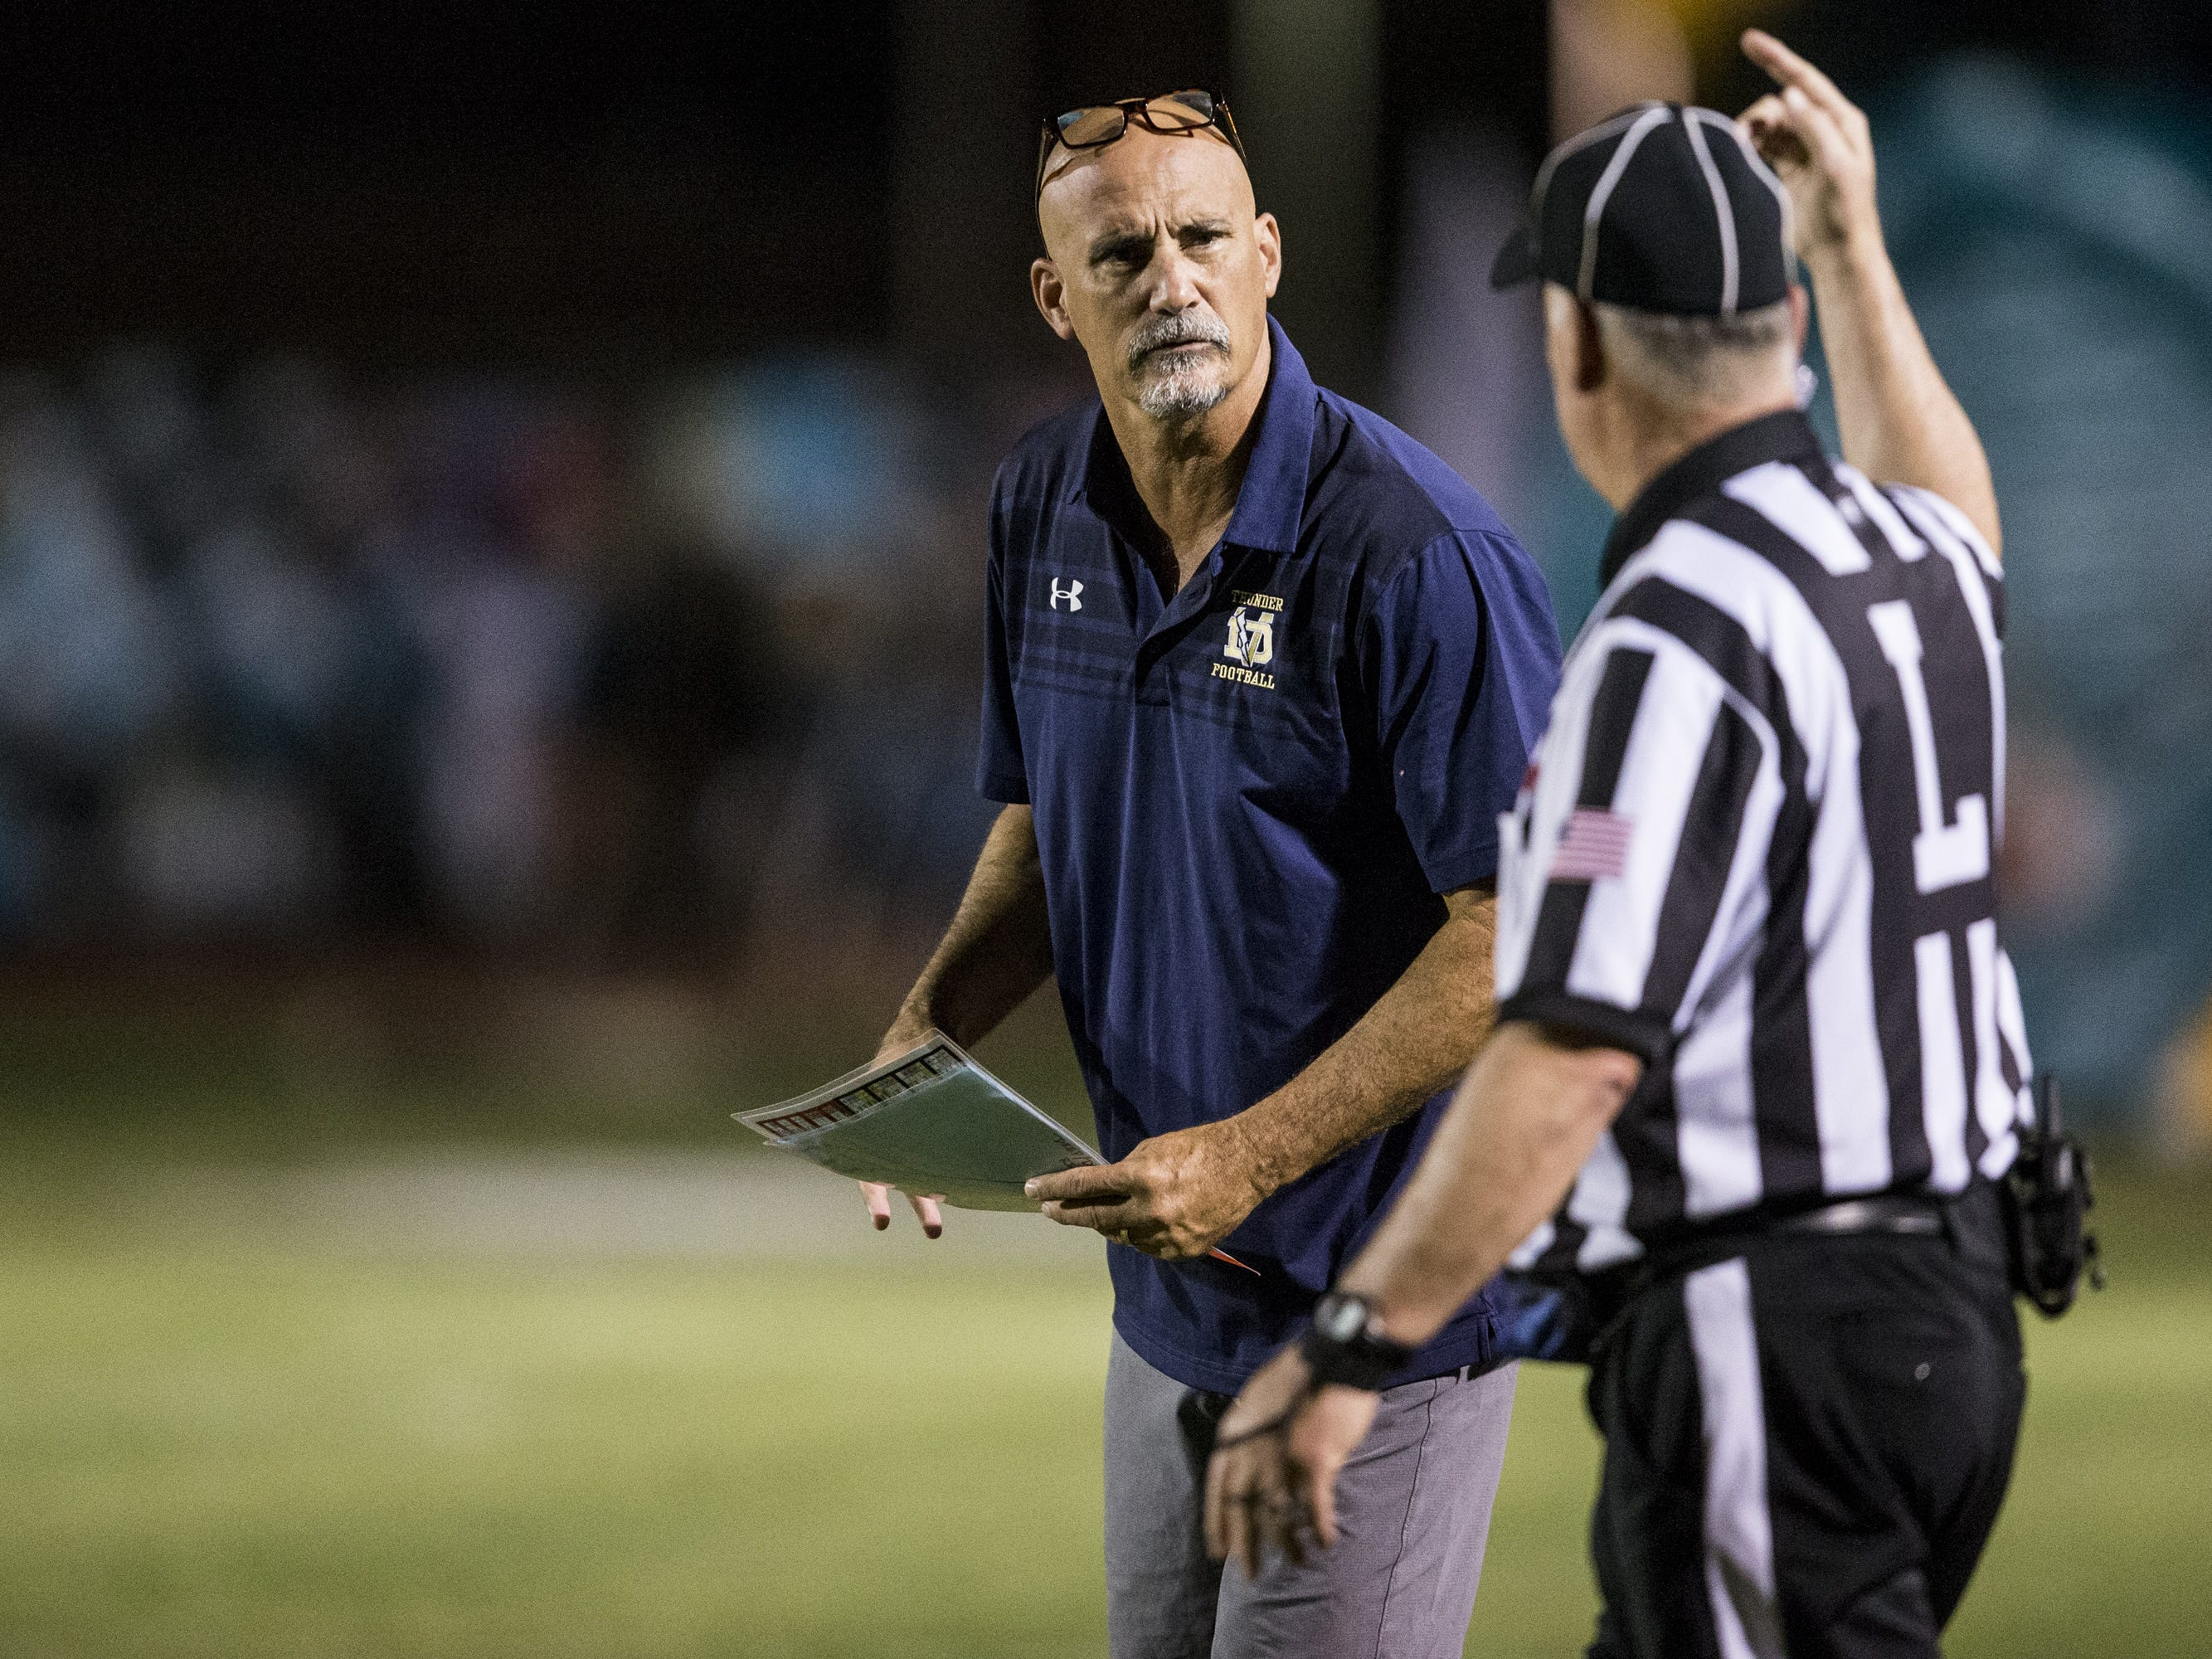 Desert Vista head coach Dan Hinds listens to a referee during the game against Highland on Friday, Sept. 21, 2018, at Highland High School in Gilbert, Ariz.   #azhsfb